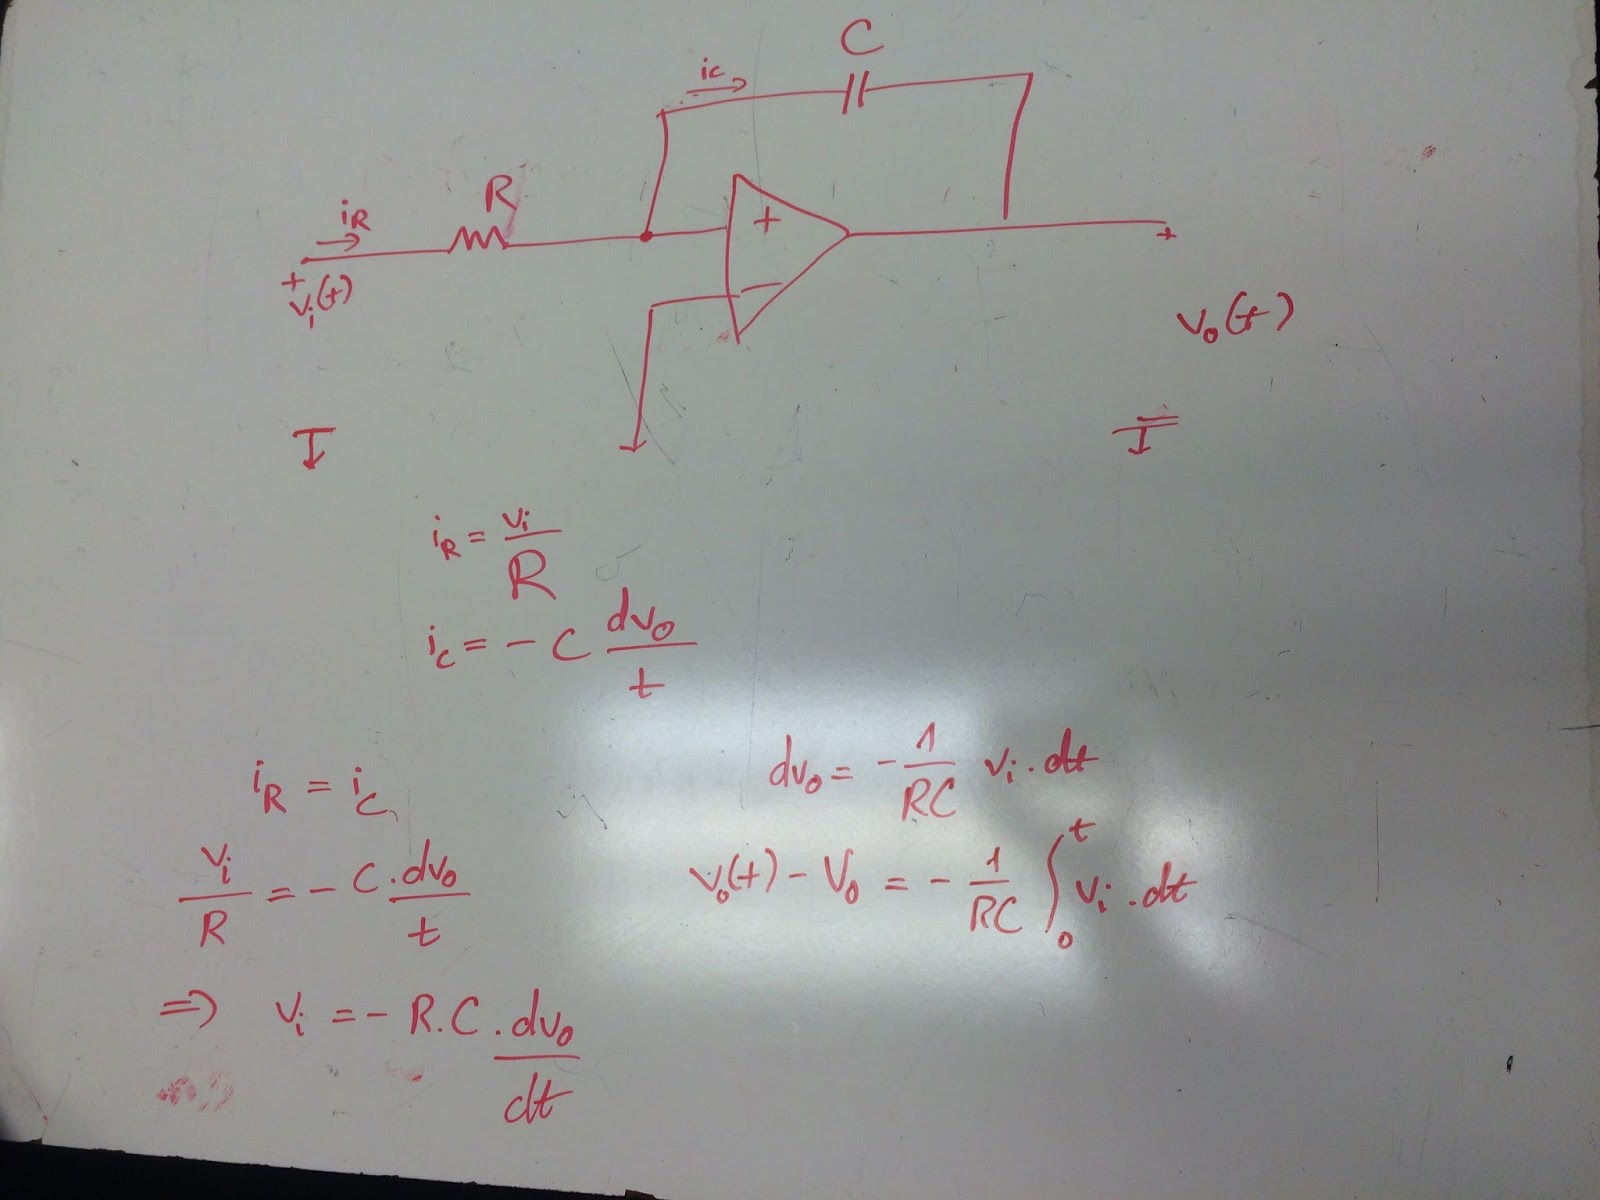 Engineering 44 Mmastro April 26 Inverting Amplifier Op Amp Circuit Integrators Are Made By Replacing The Feedback Resistor With A Capacitor On An Differentiators Putting